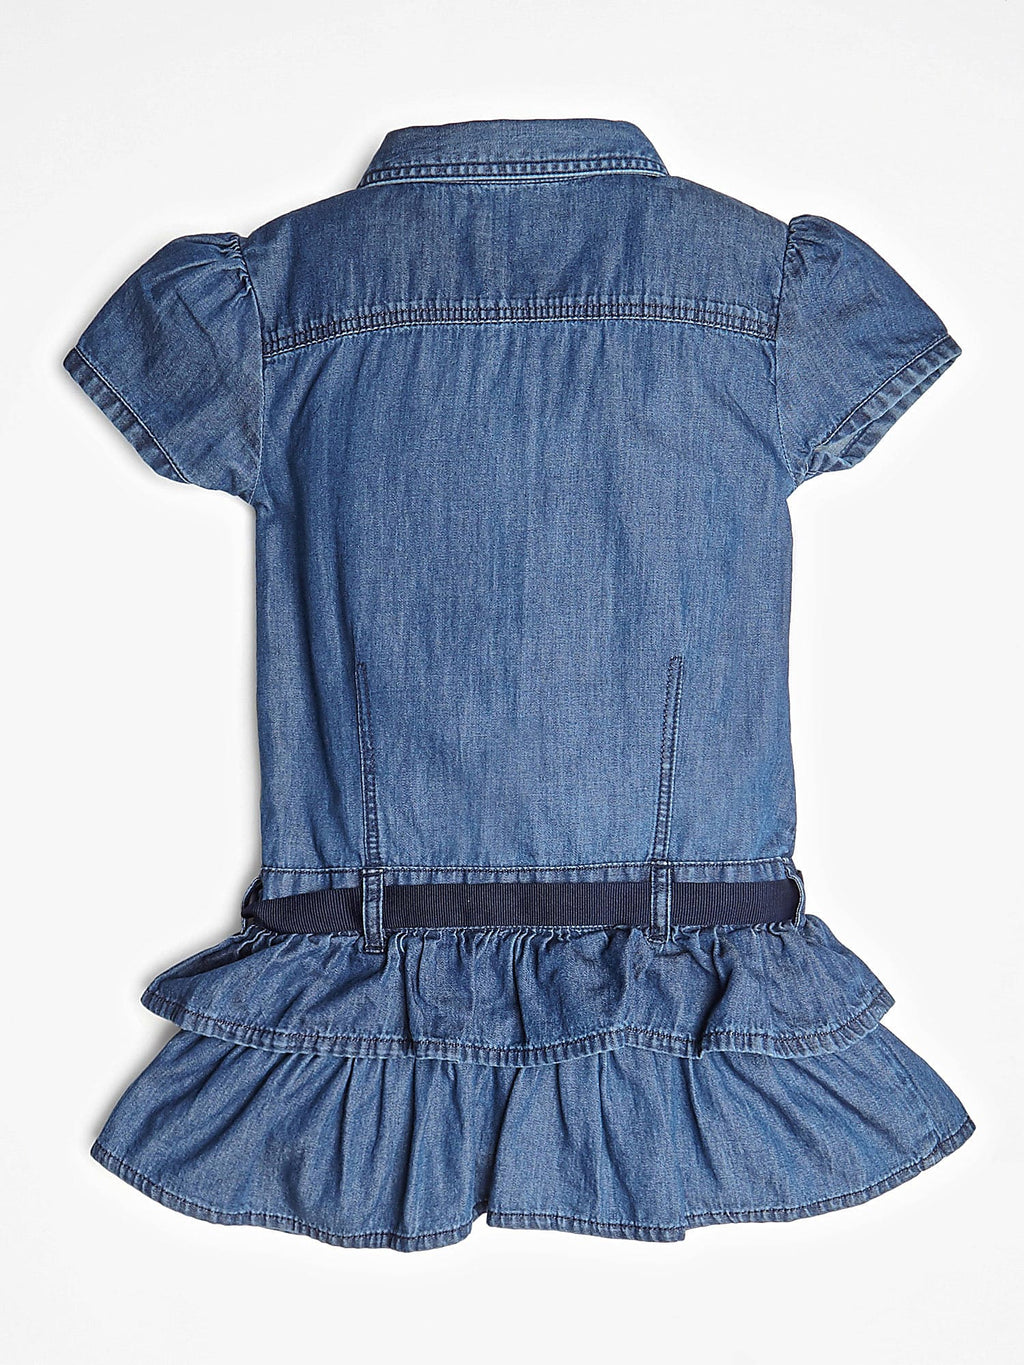 Denim Dress - MamaSmile